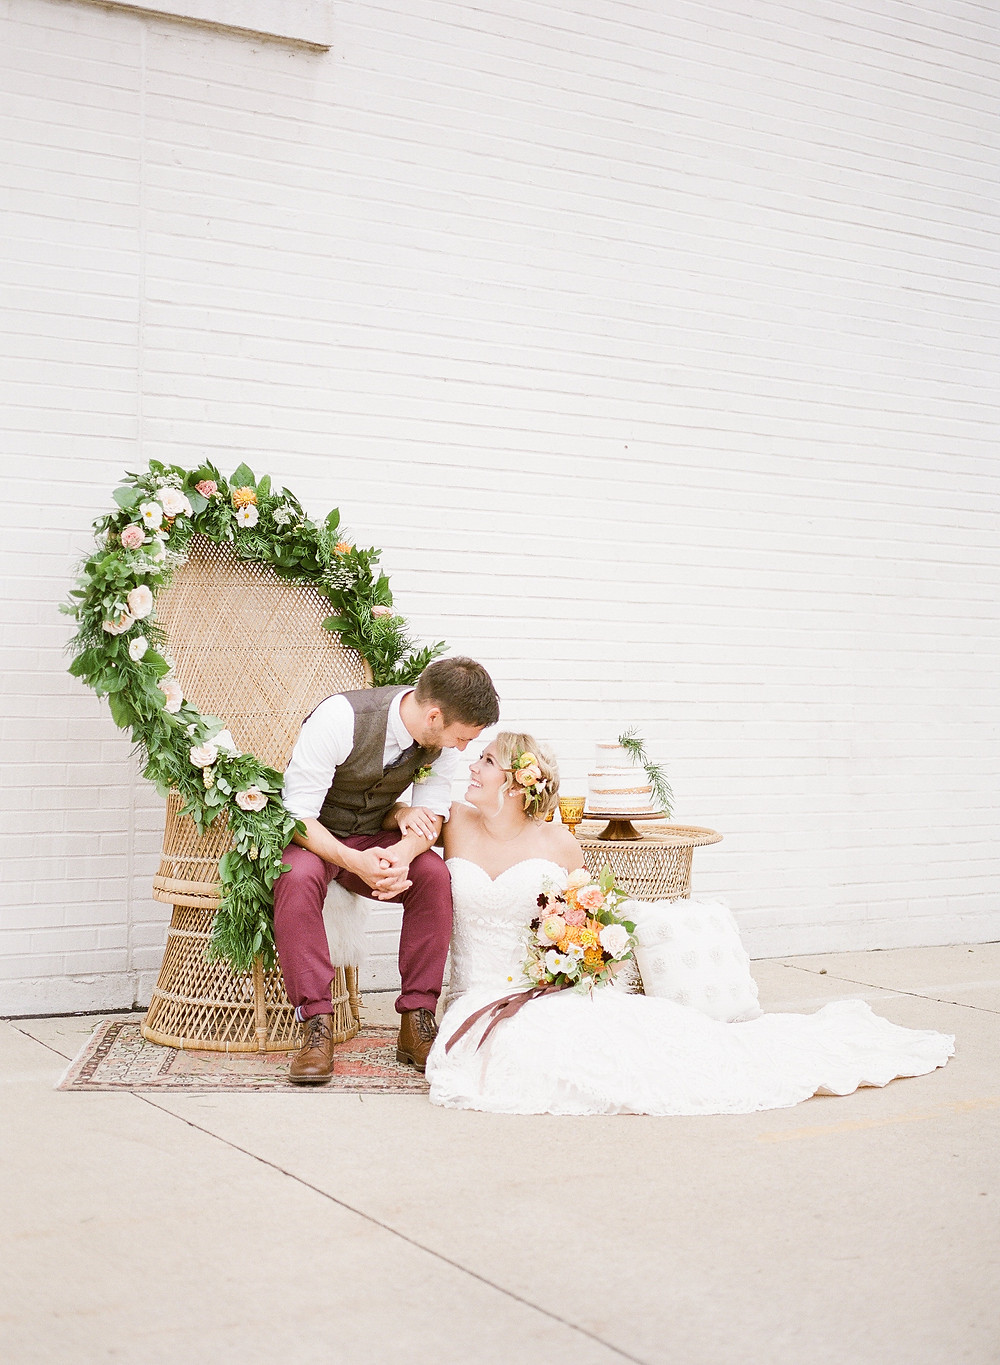 Bride and groom sitting in wicker peacock chair decorated with garland of flowers and greenery by studio bloom iowa weddings